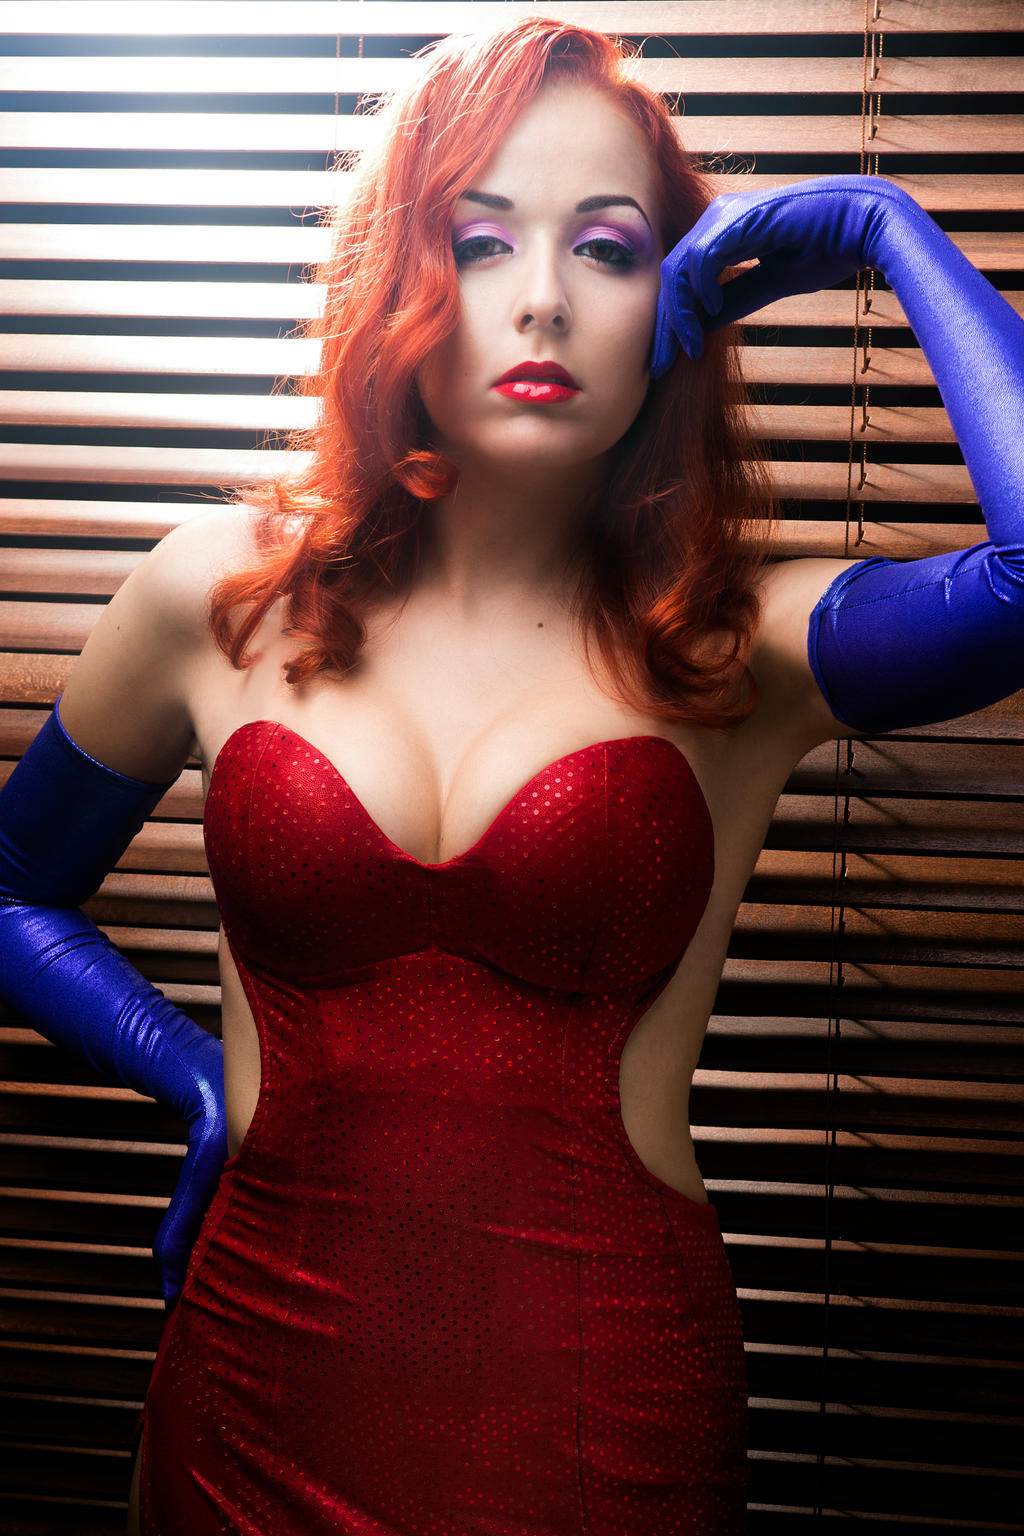 Jessica Rabbit. By SrtaRoxanne On DeviantArt